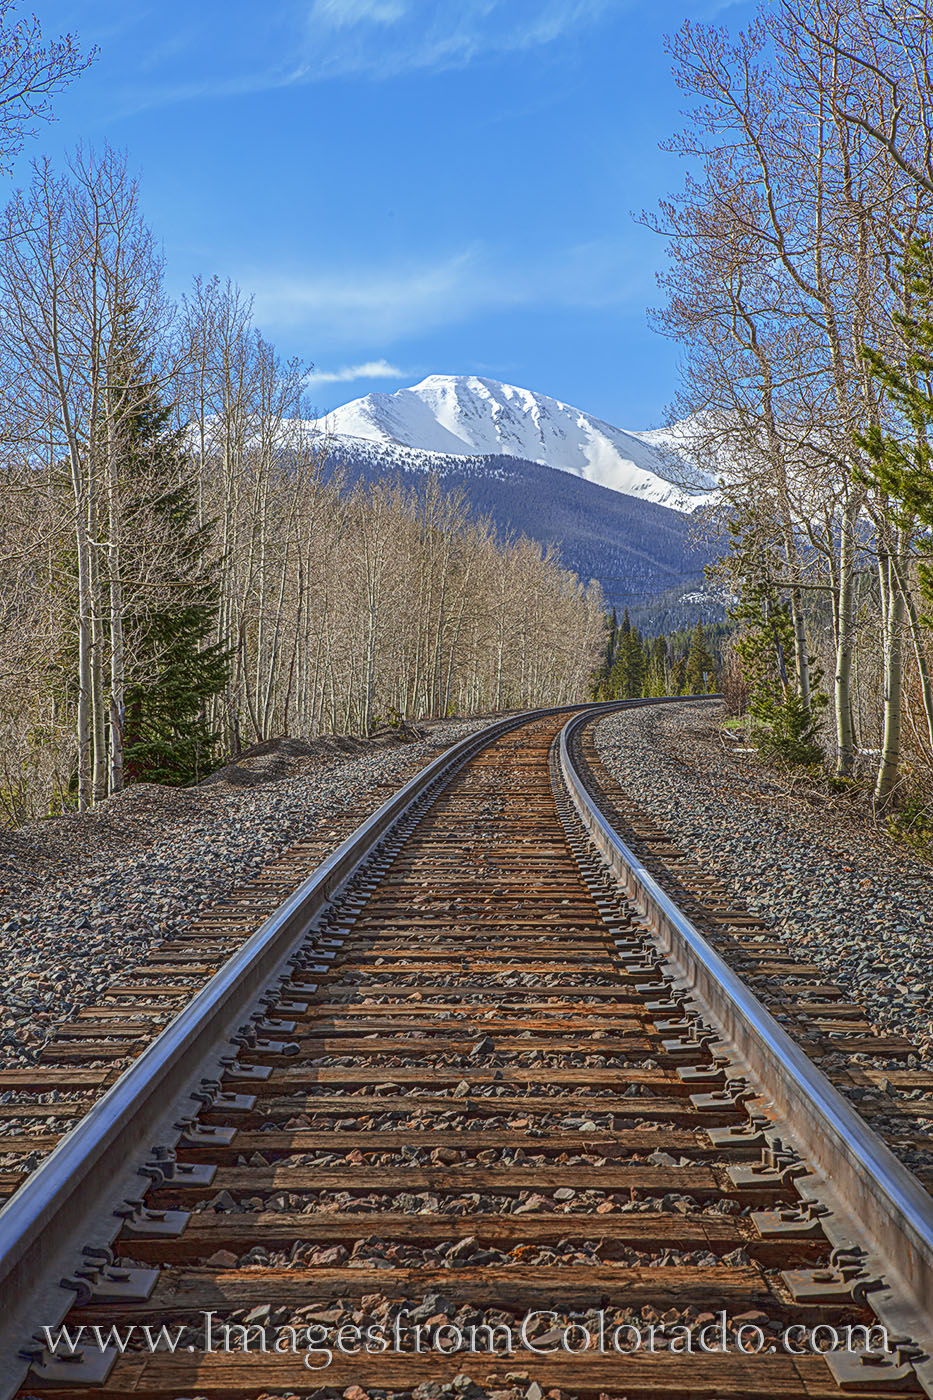 train tracks, winter park, continental divide, parry peak, berthoud pass, tracks, grand county, mountains, spring, snow, photo